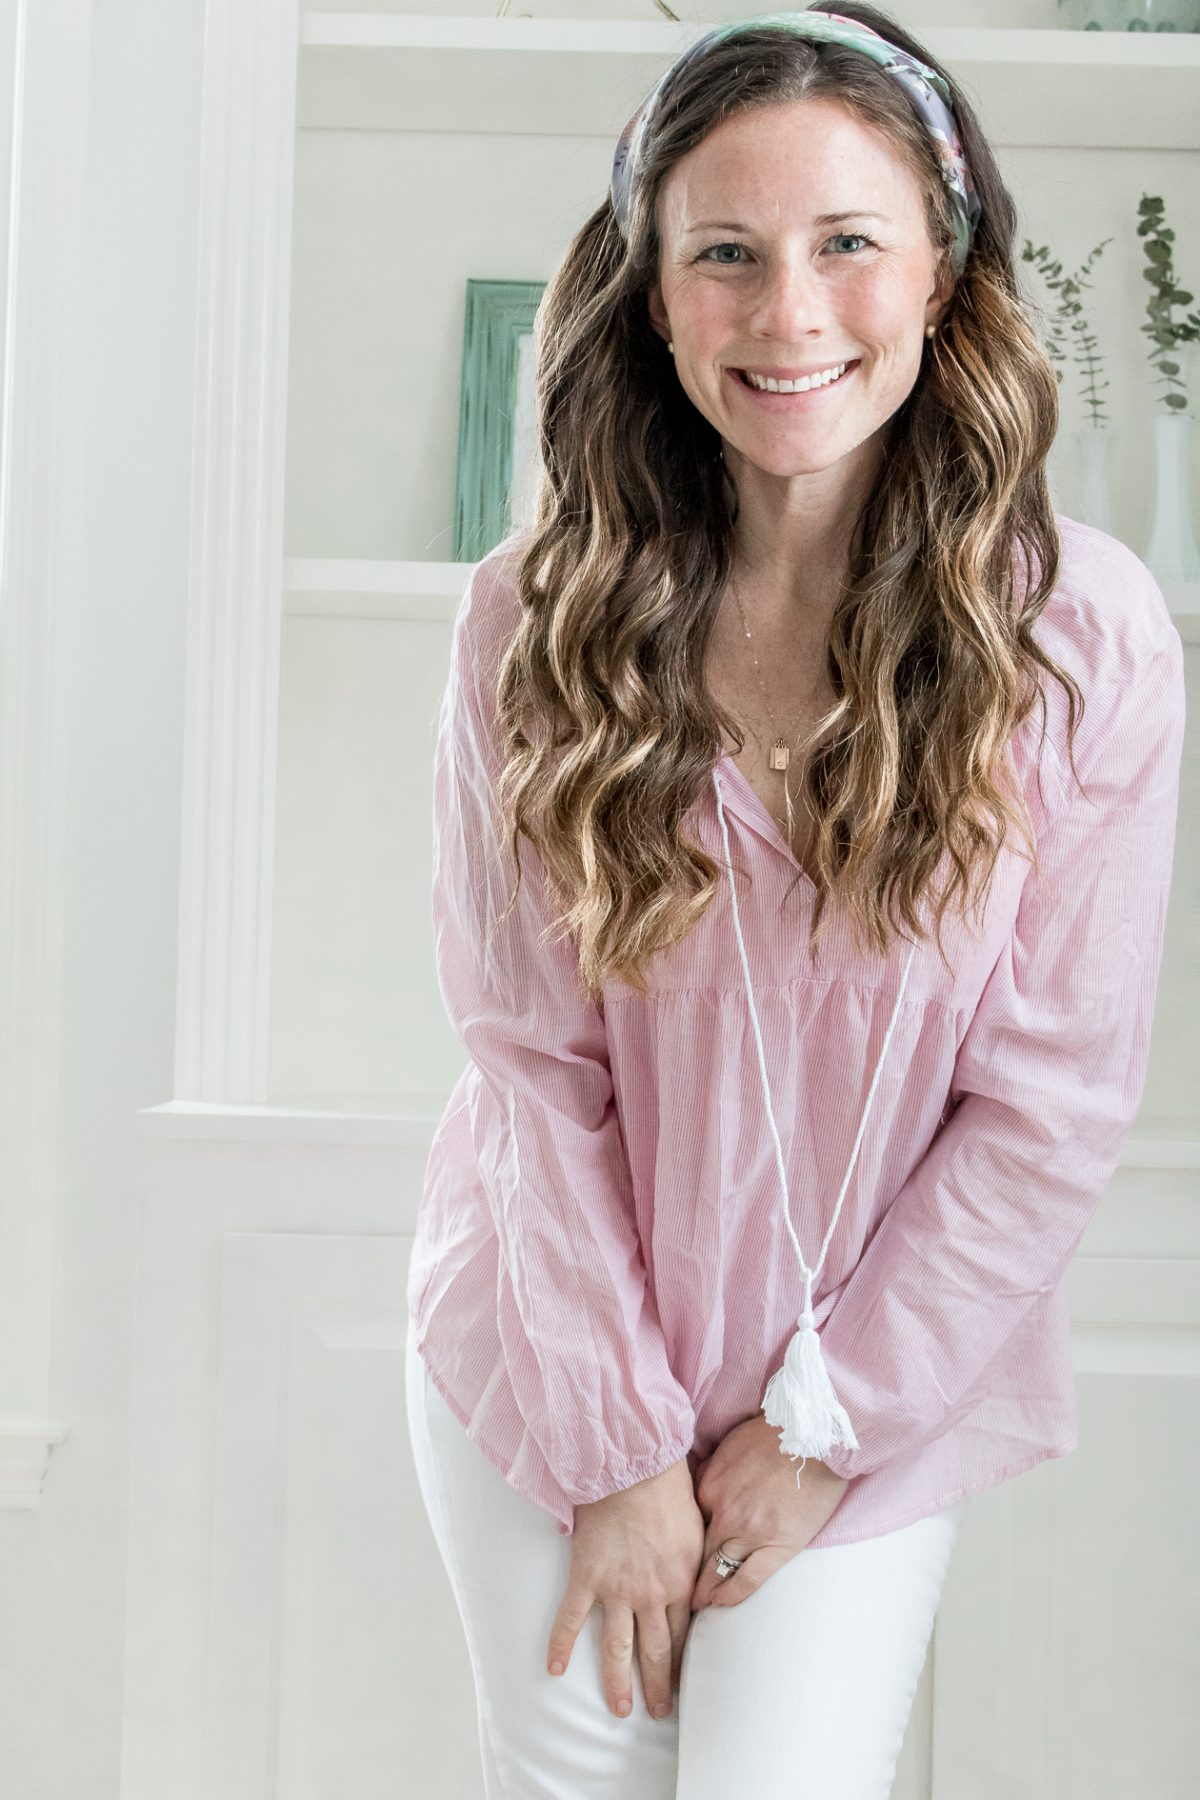 Smiling woman in pink shirt white jeans cognac riding boots